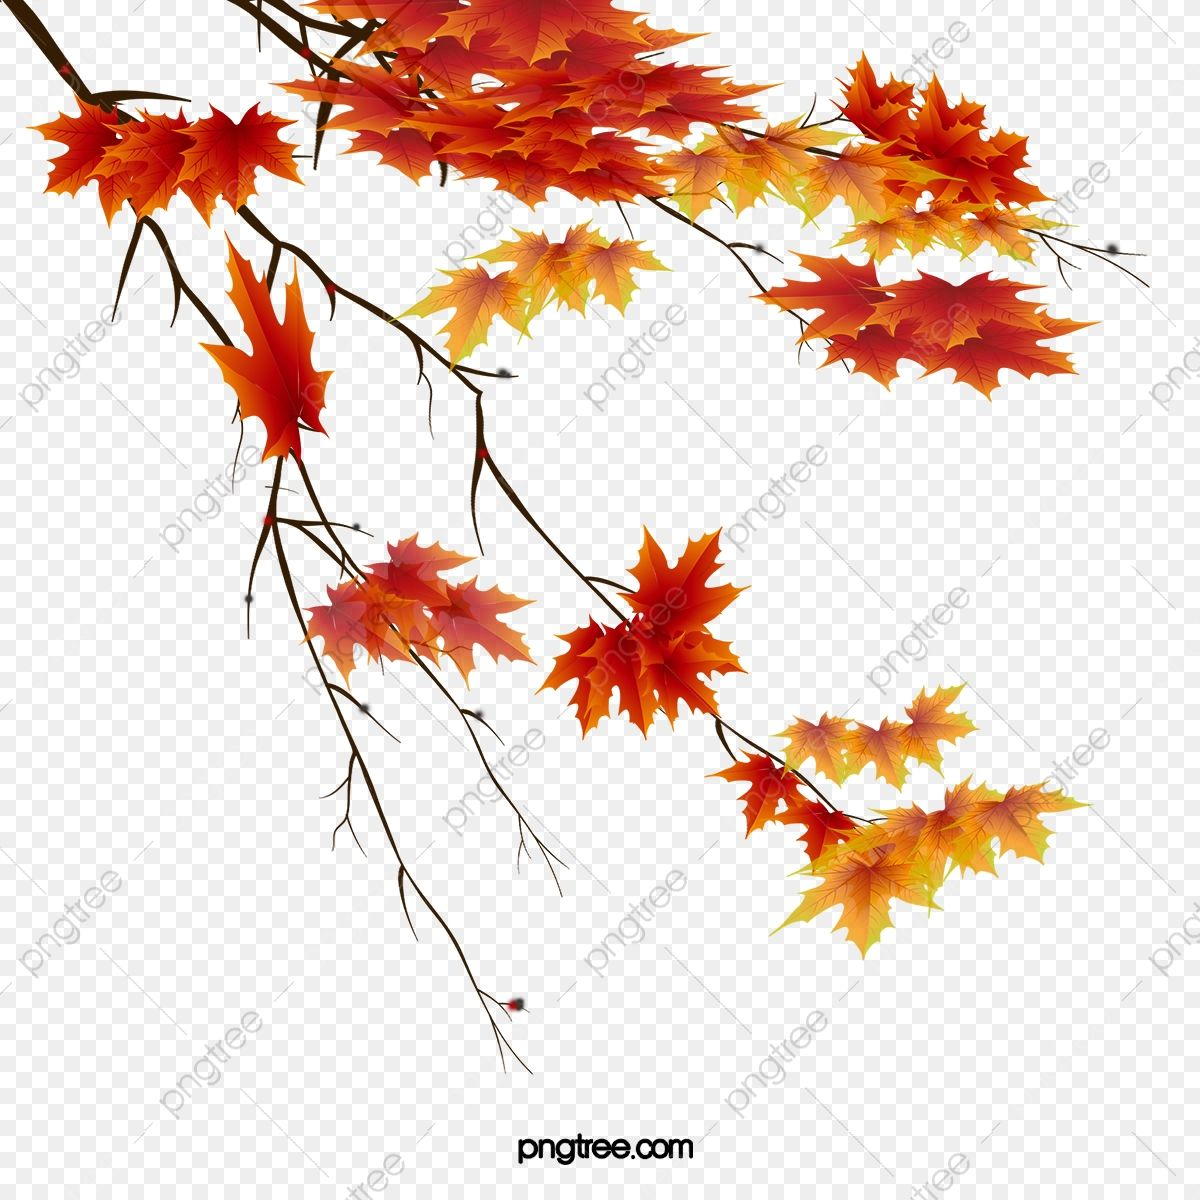 Autumn Leaves Beautiful Maple Leaf Maple Leaf Clipart Autumn Red Leaves Png Transparent Clipart Image And Psd File For Free Download Leaf Clipart Maple Leaf Clipart Autumn Leaves